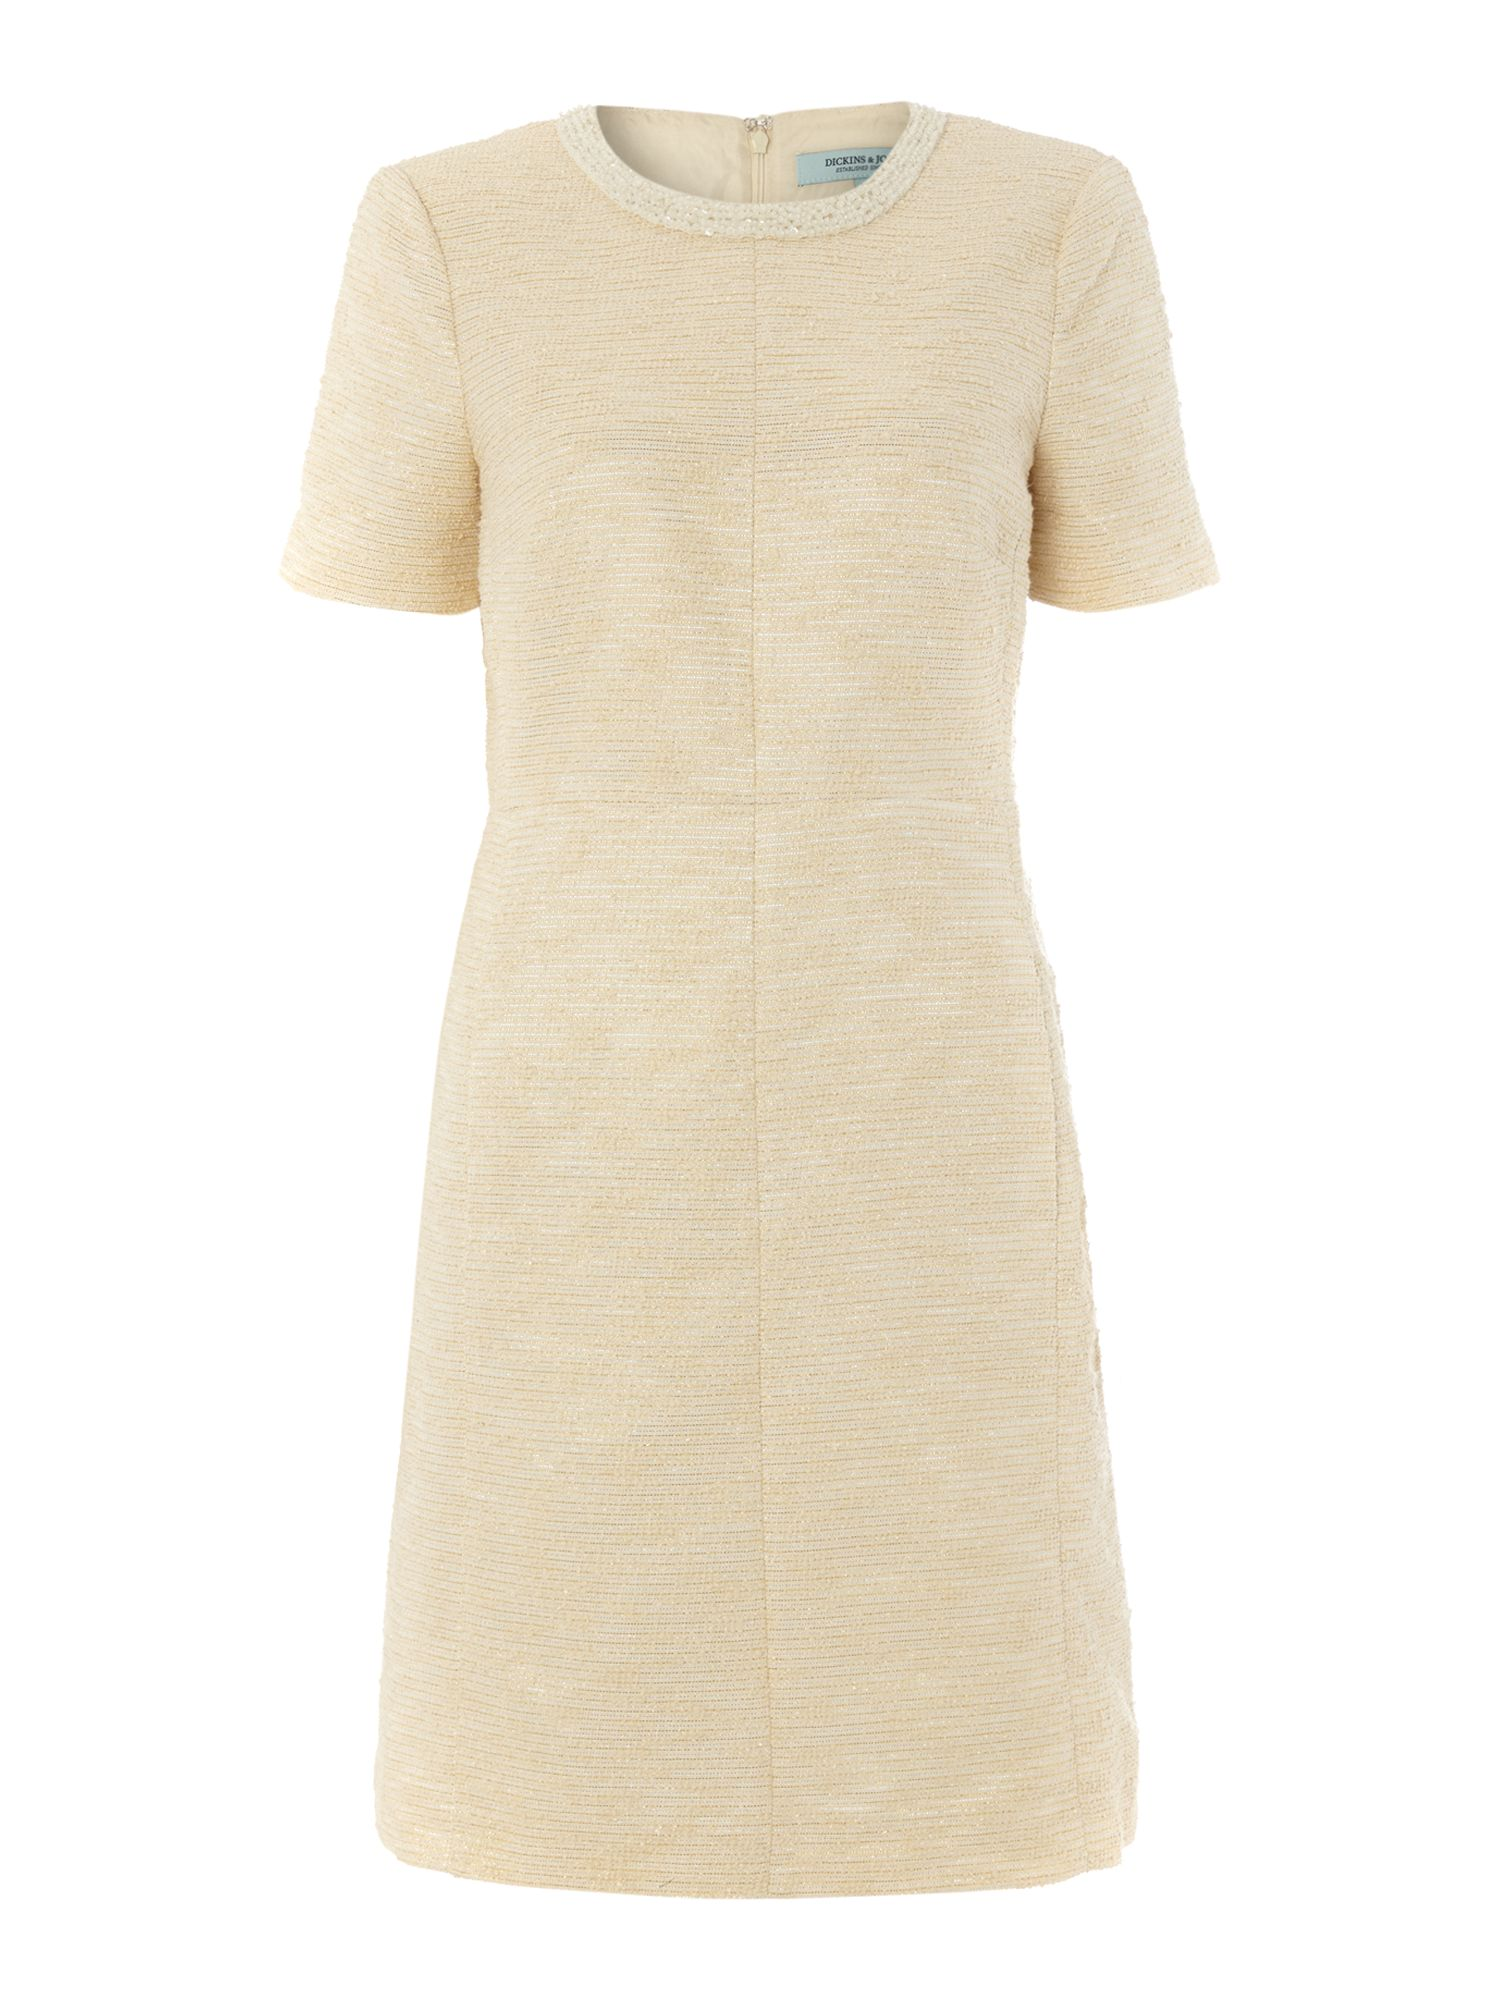 Dickins & Jones Embellished Neckline Shift Dress, Nude